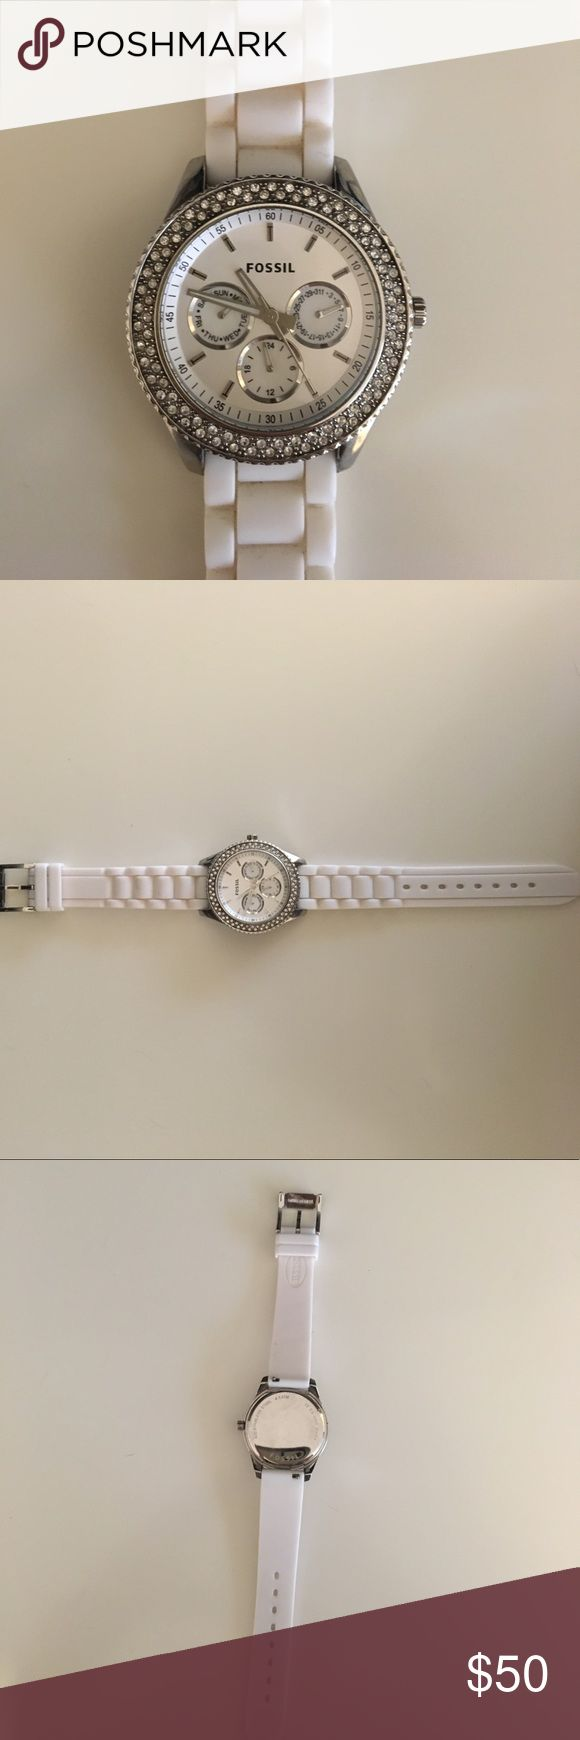 Fossil watch Sporty and sophisticated with a stainless steel case and white convertible silicone strap. Comfortable to wear. **Needs a battery replacement** Fossil Accessories Watches